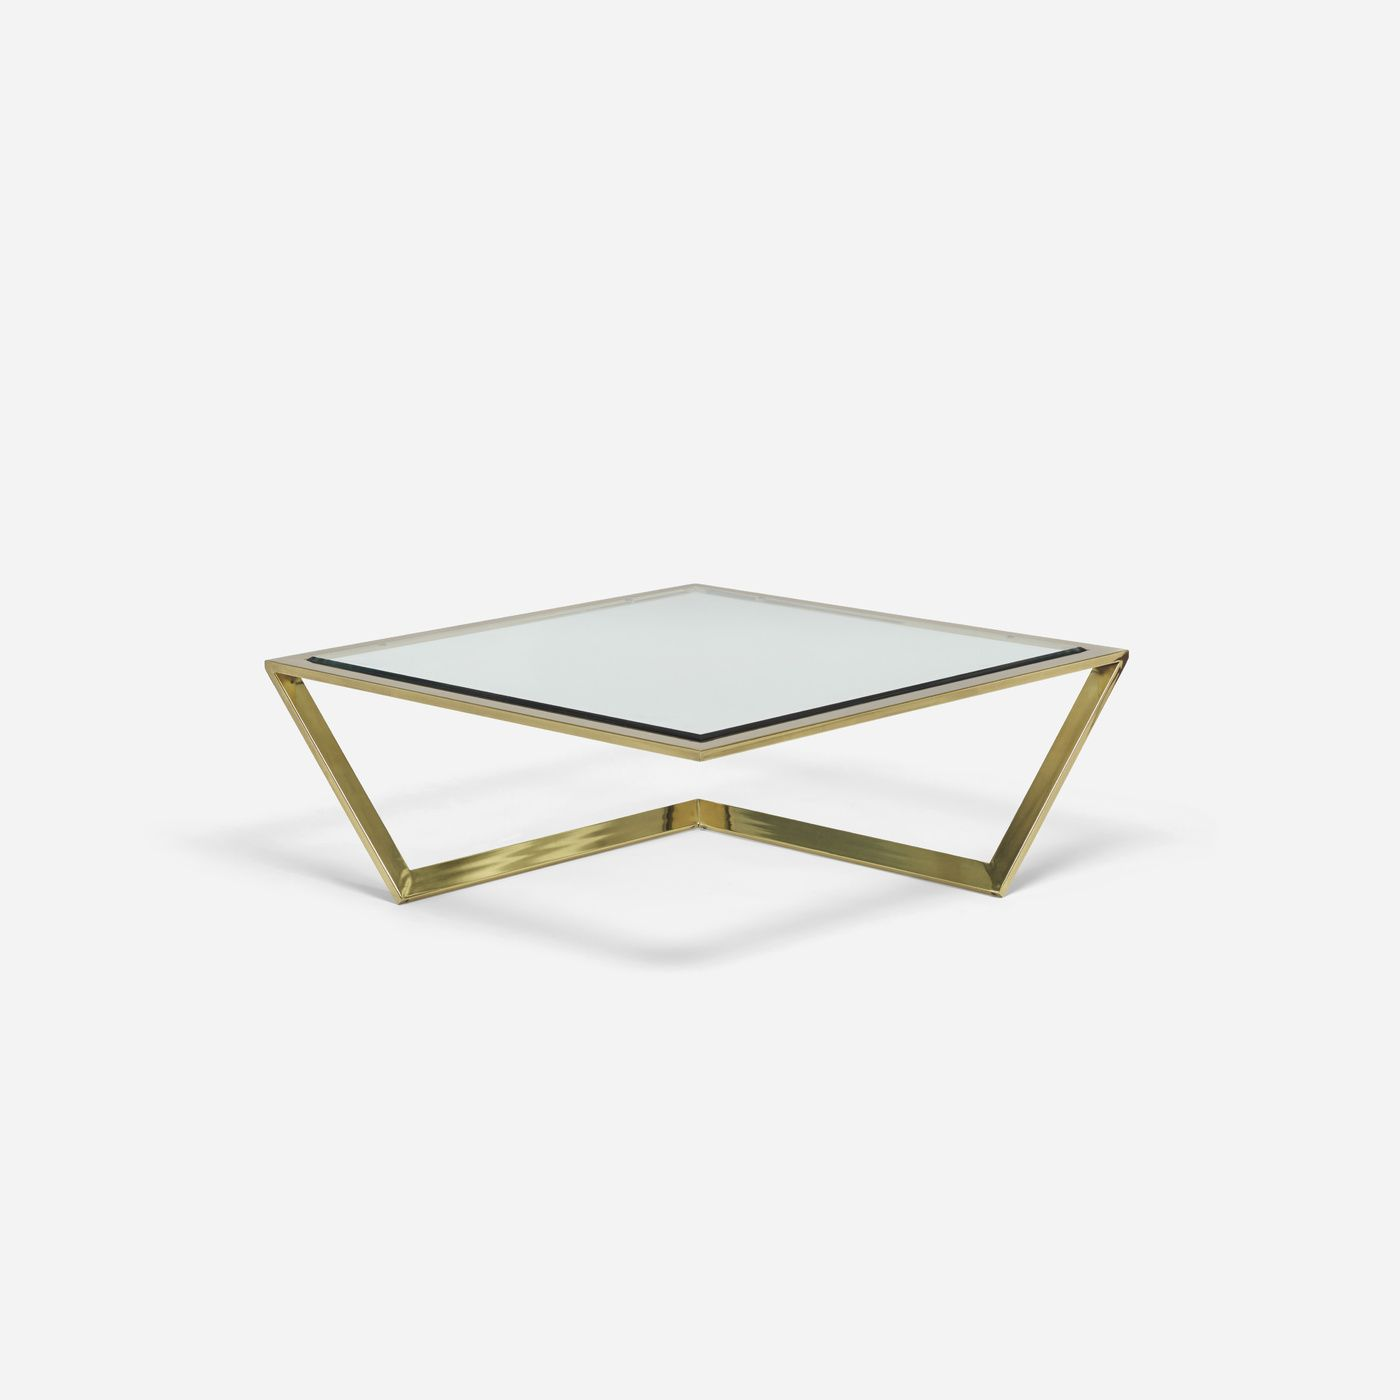 254 Modern Coffee Table Mass Modern 12 July 2014 Auctions Wright Coffee Table Modern Coffee Tables Glass Coffee Table [ 1400 x 1400 Pixel ]